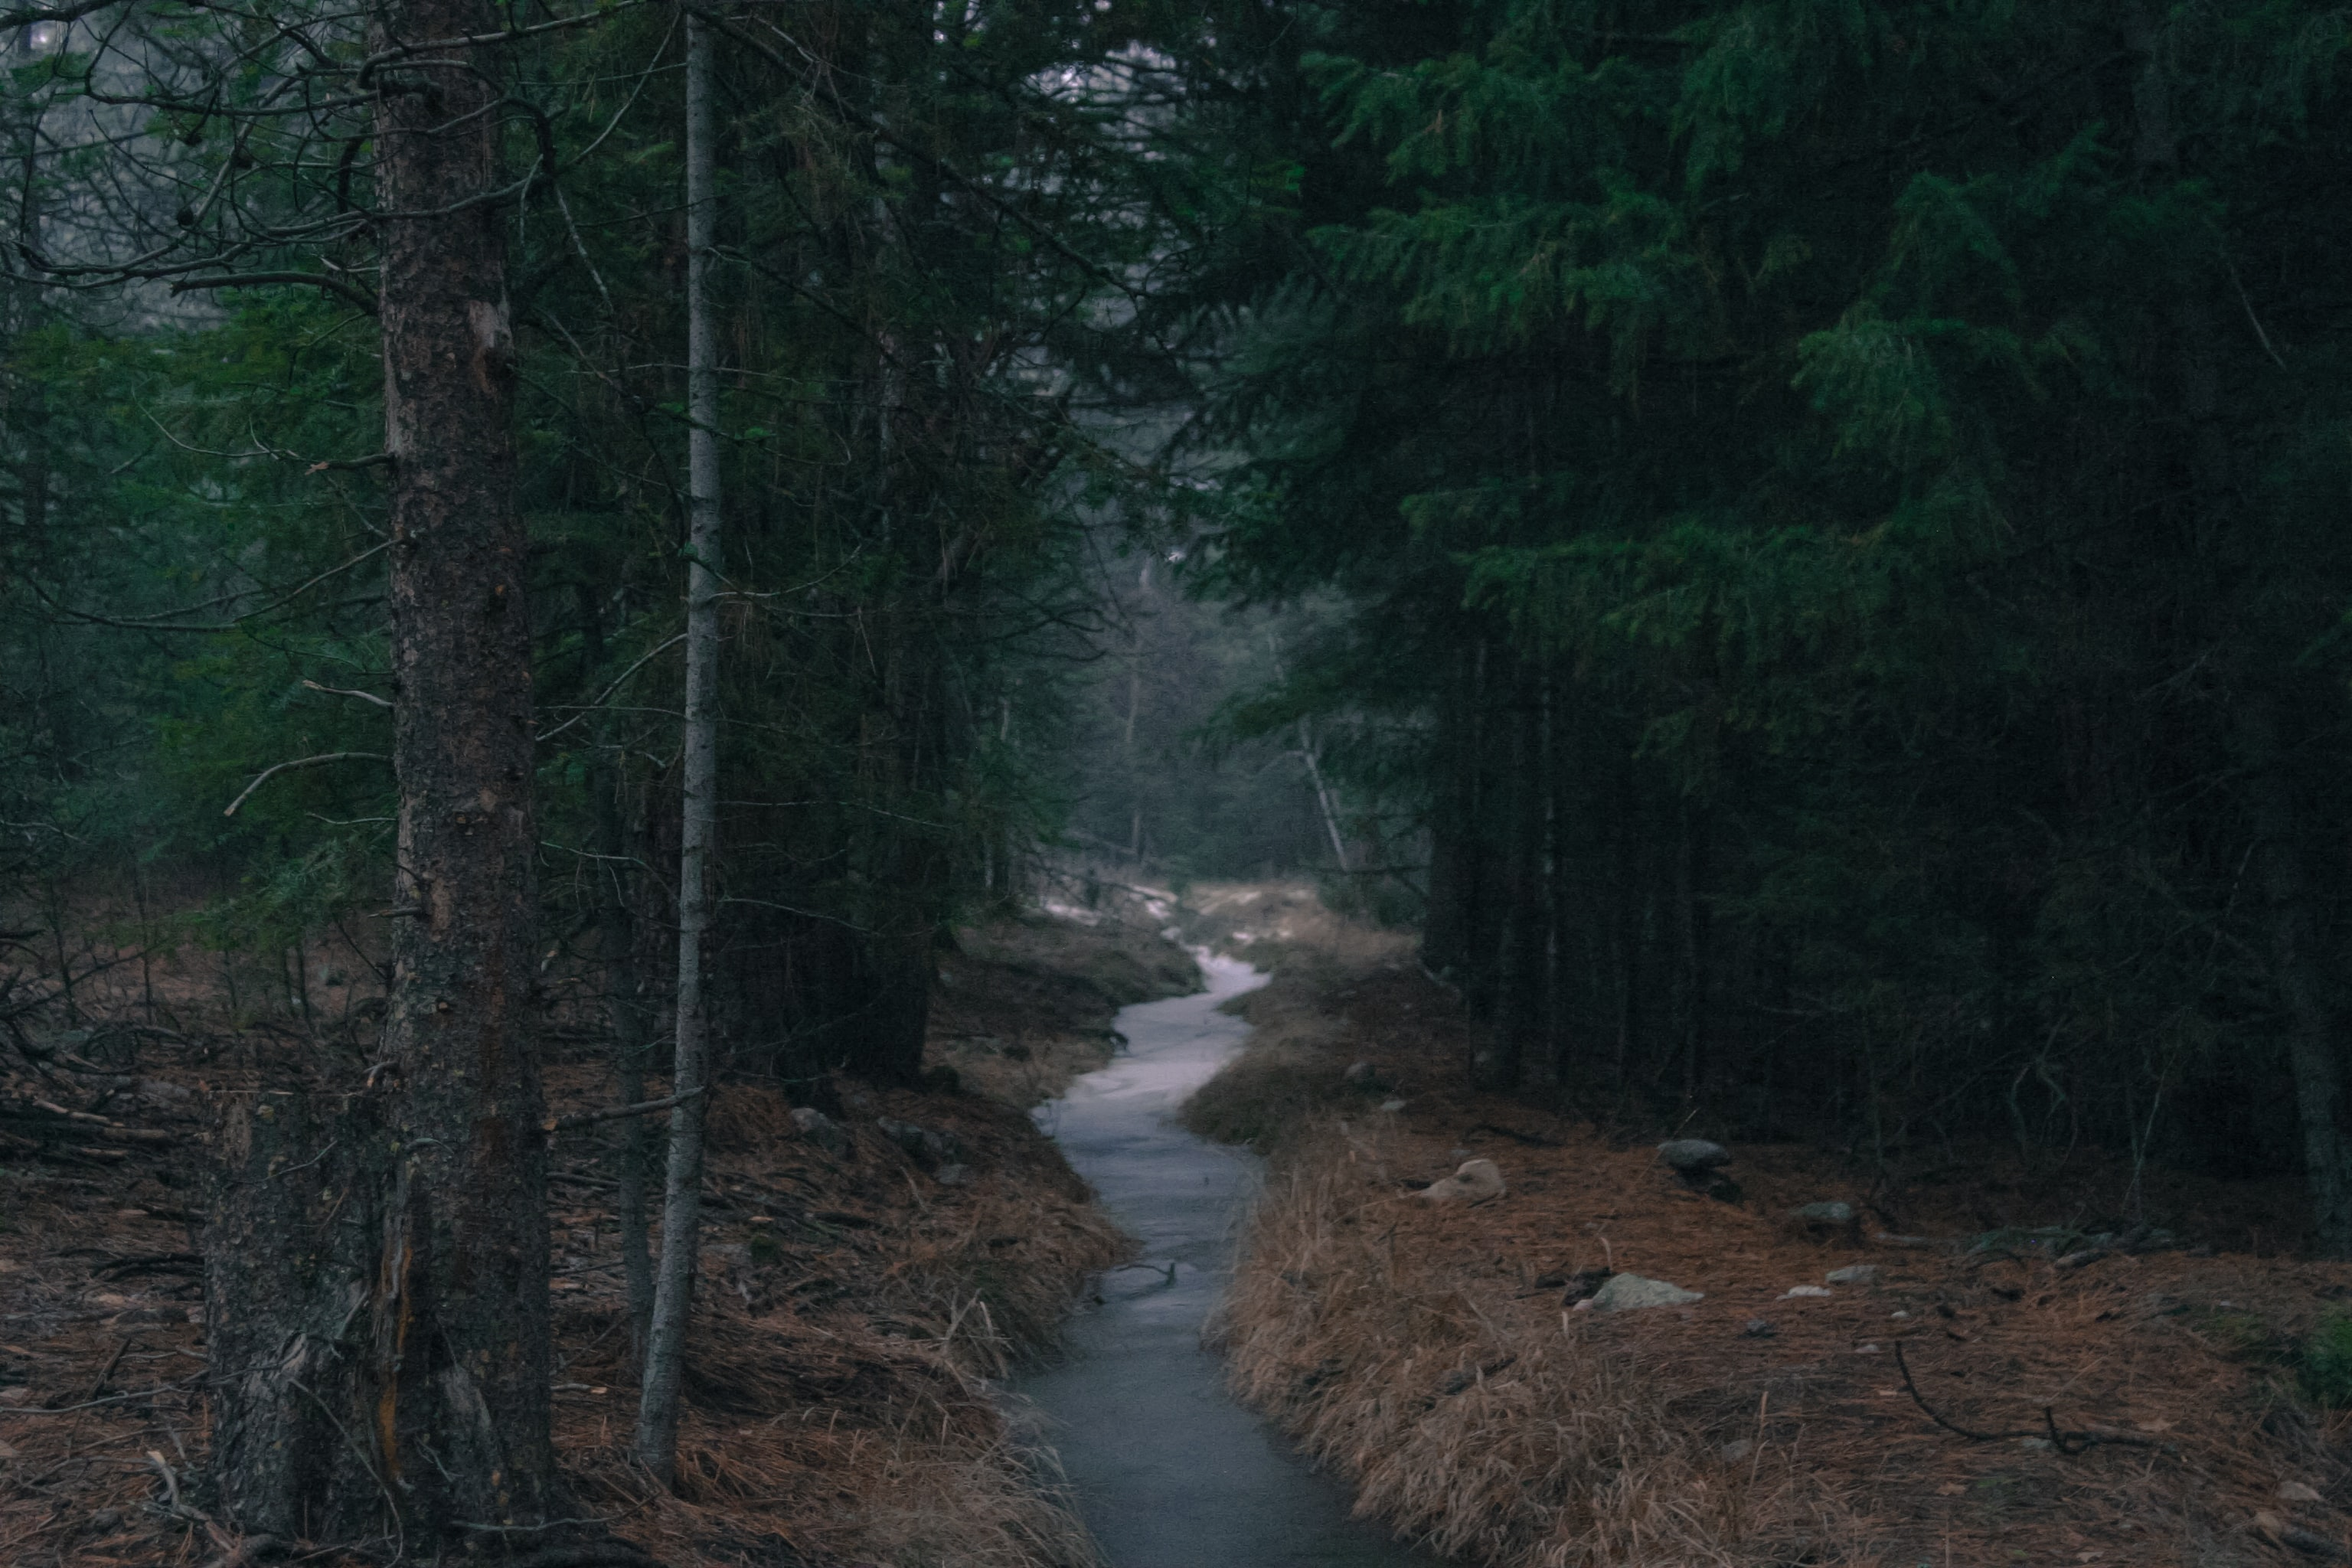 A slow-moving stream flowing through an evergreen forest in the autumn